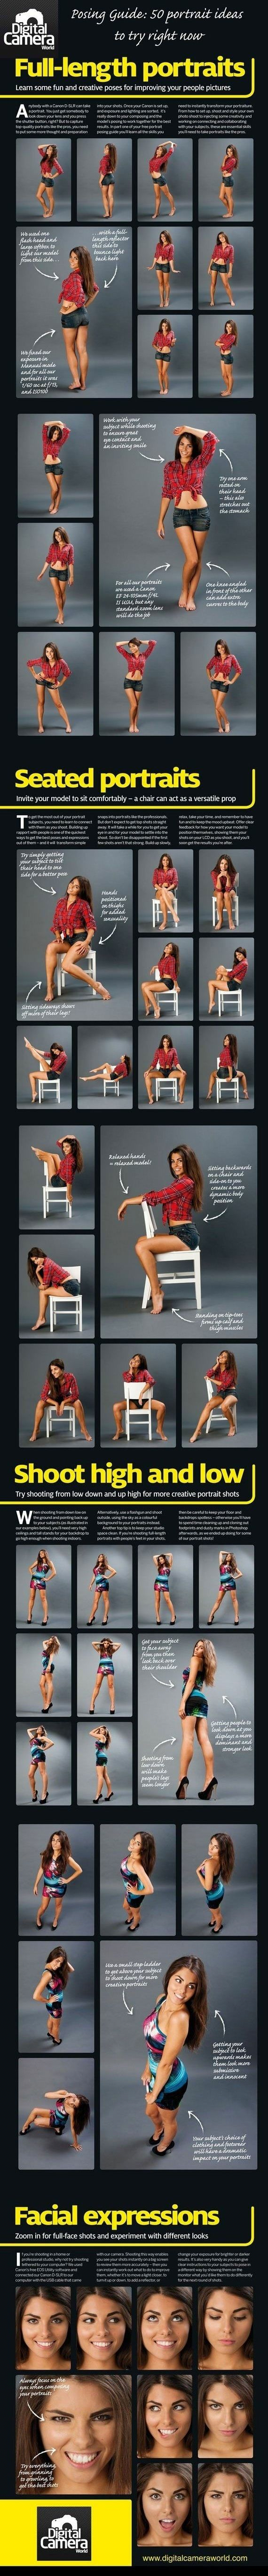 Posing for pictures guide :)